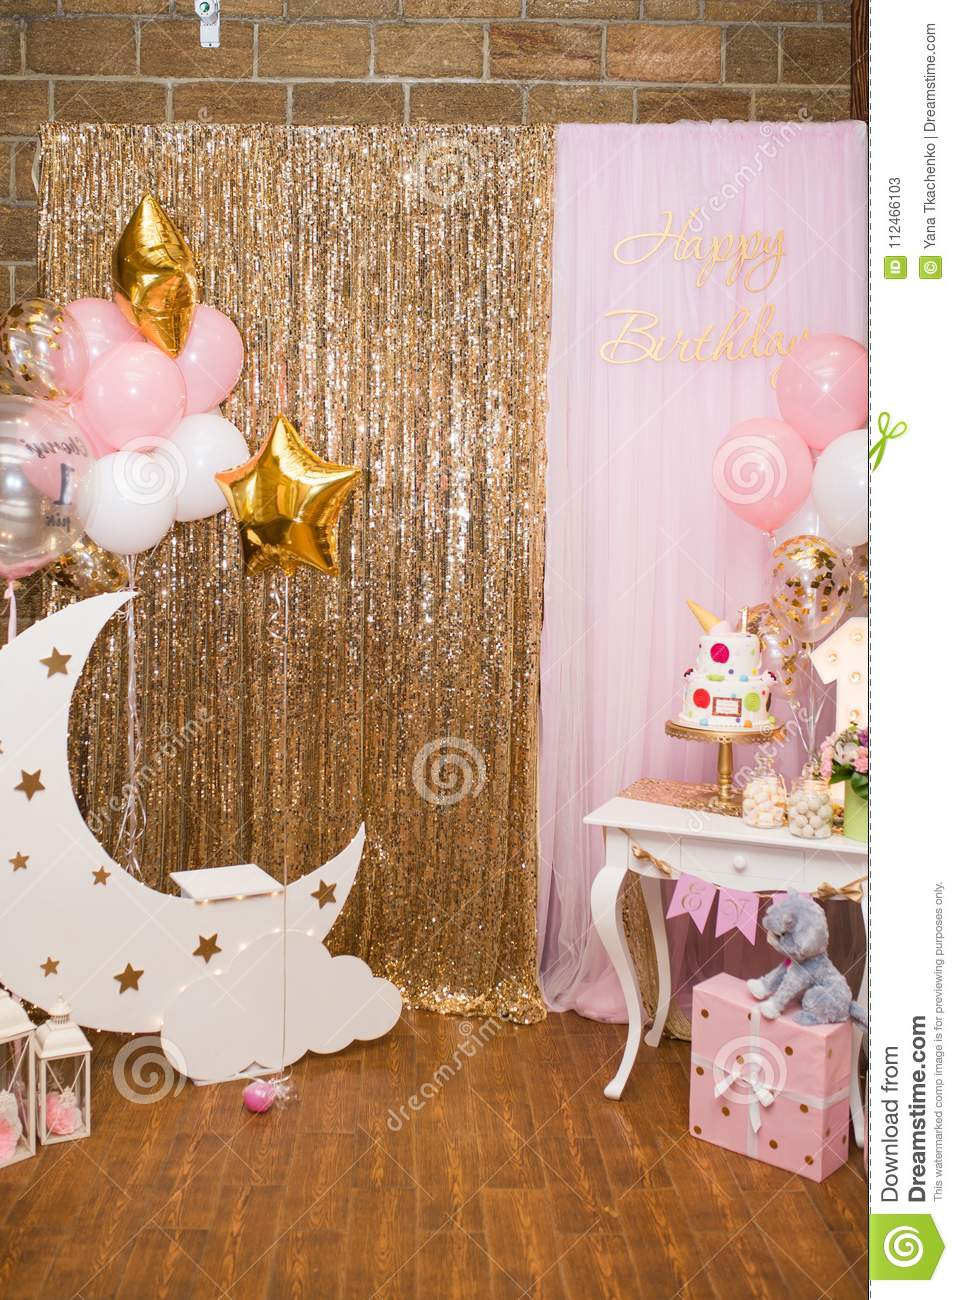 Decorations For A One Year Old Girls Birthday Party Concept Of Childrens